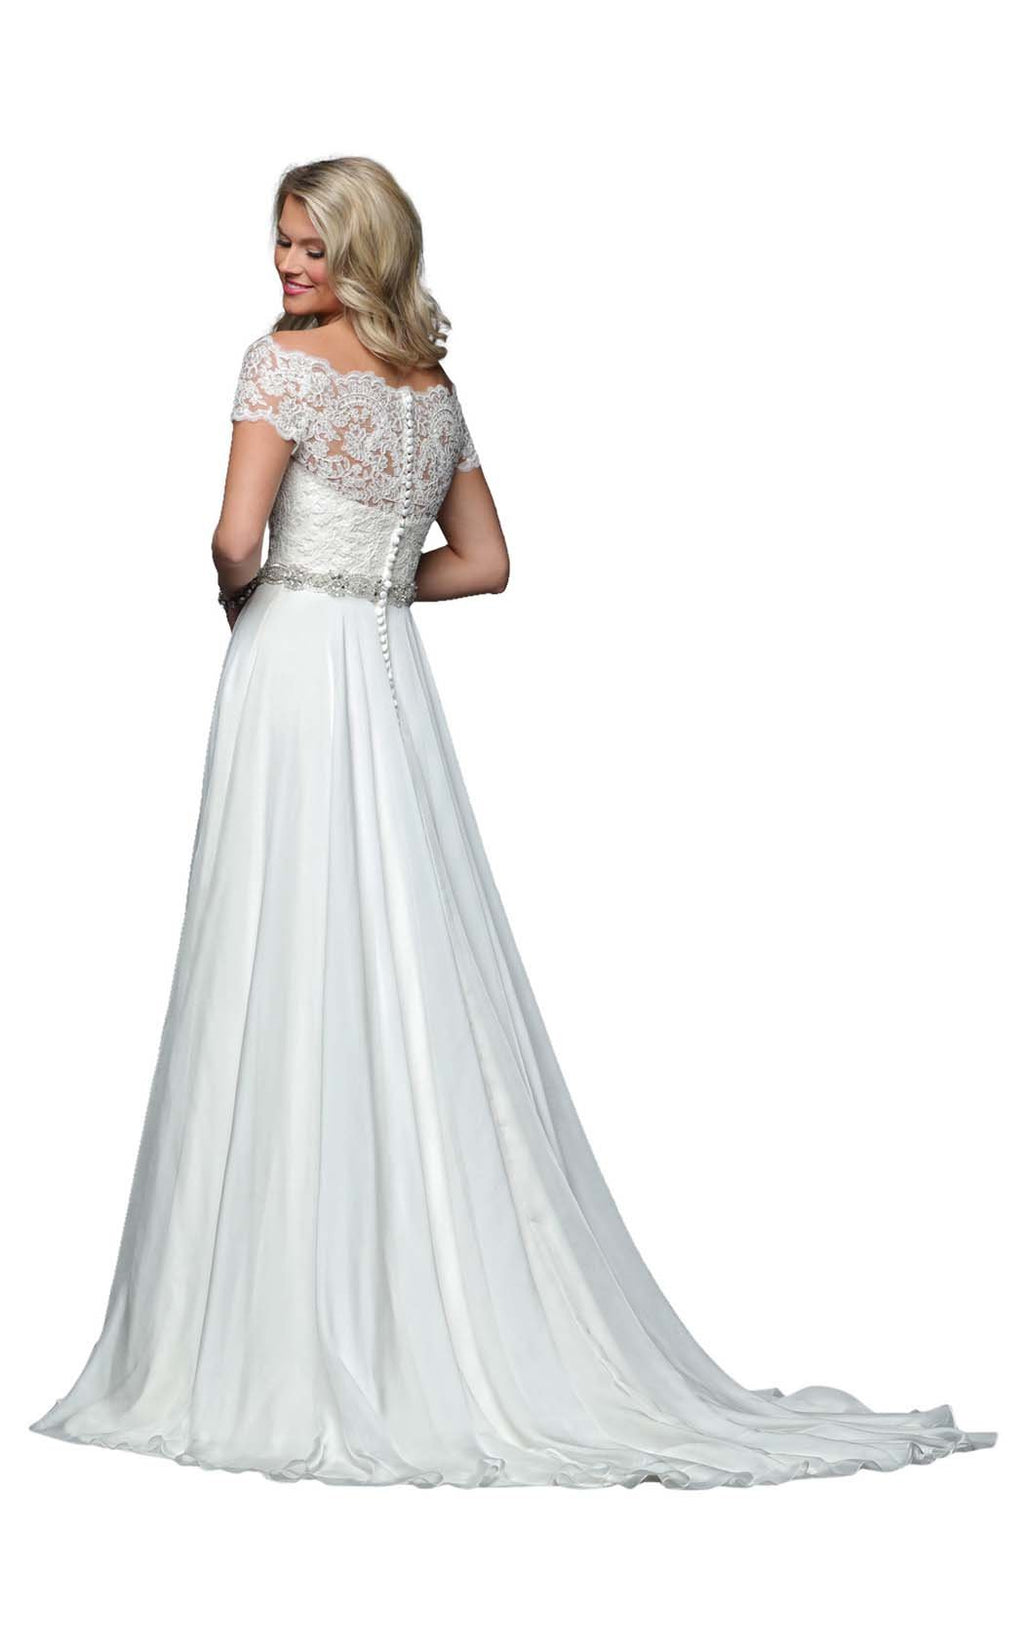 Jadore Bridal 77018 White